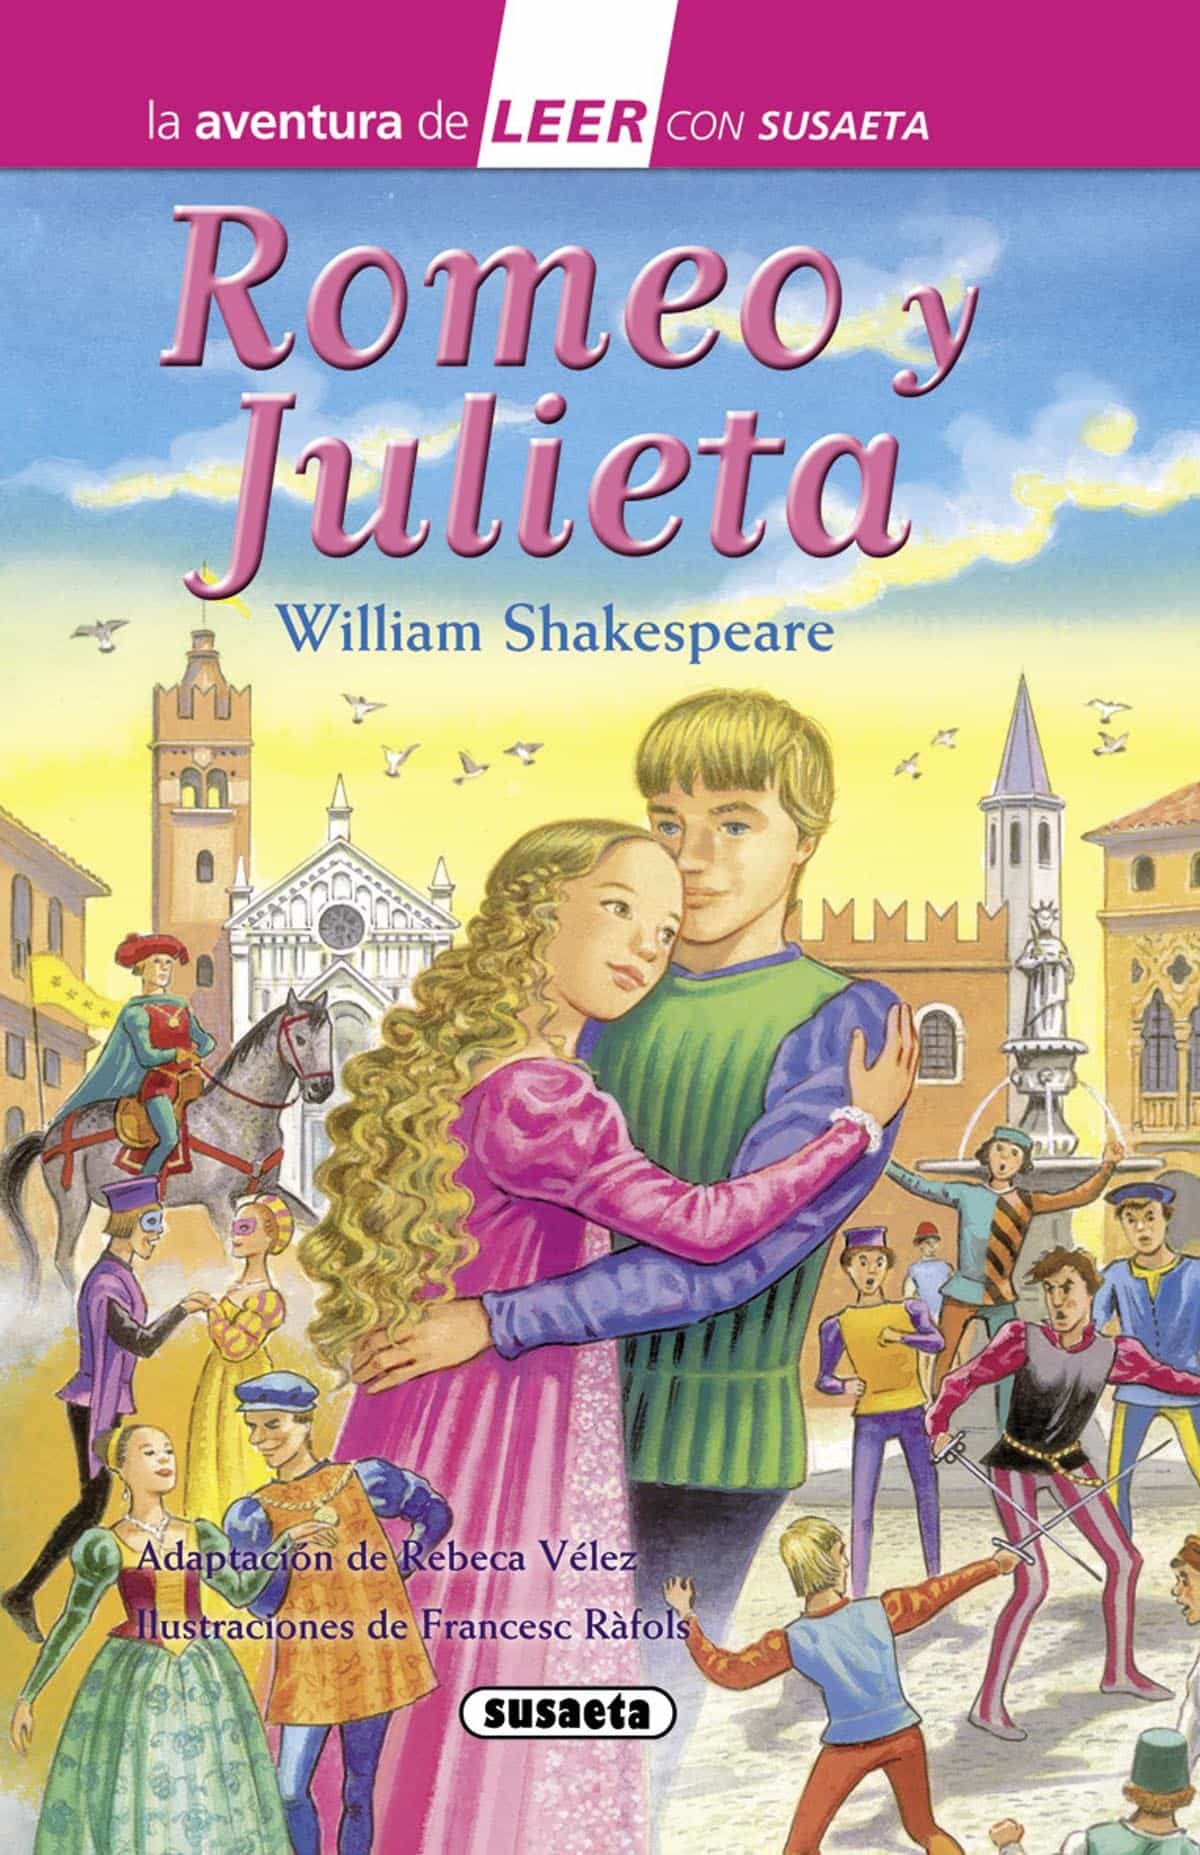 El Libro De Julieta Romeo Y Julieta William Shakespeare Comprar Libro